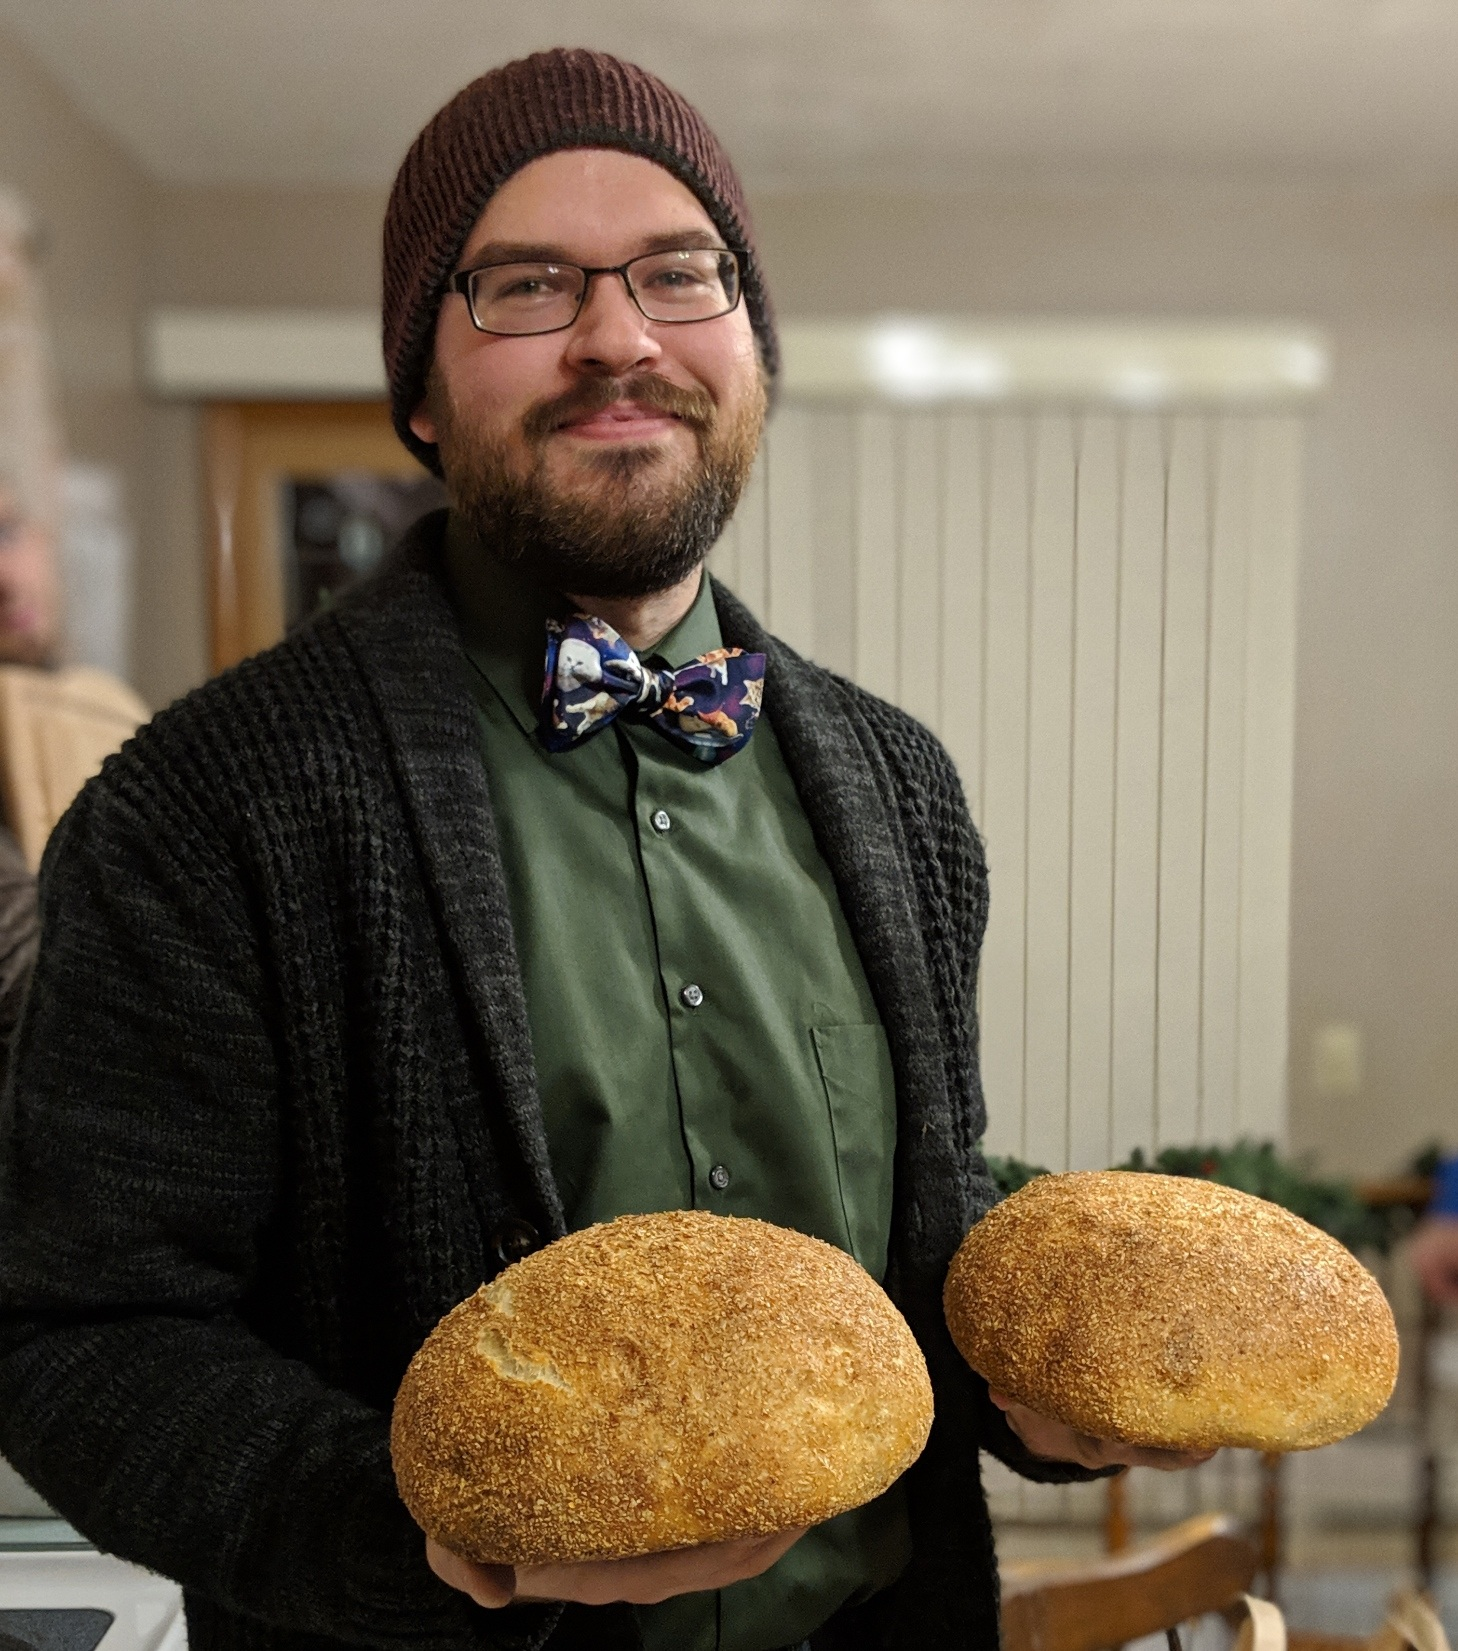 P Valentine Haggerty - Welcome! I'm a home baker and miller located in Charlottesville, VA interested in real, fresh bread and baked goods.In addition to this blog, I also occasionally contribute recipes to my friends at the New England Travel Journal.If you found this page and were looking for Patrick V Haggerty the mathematician, I have a webpage here.